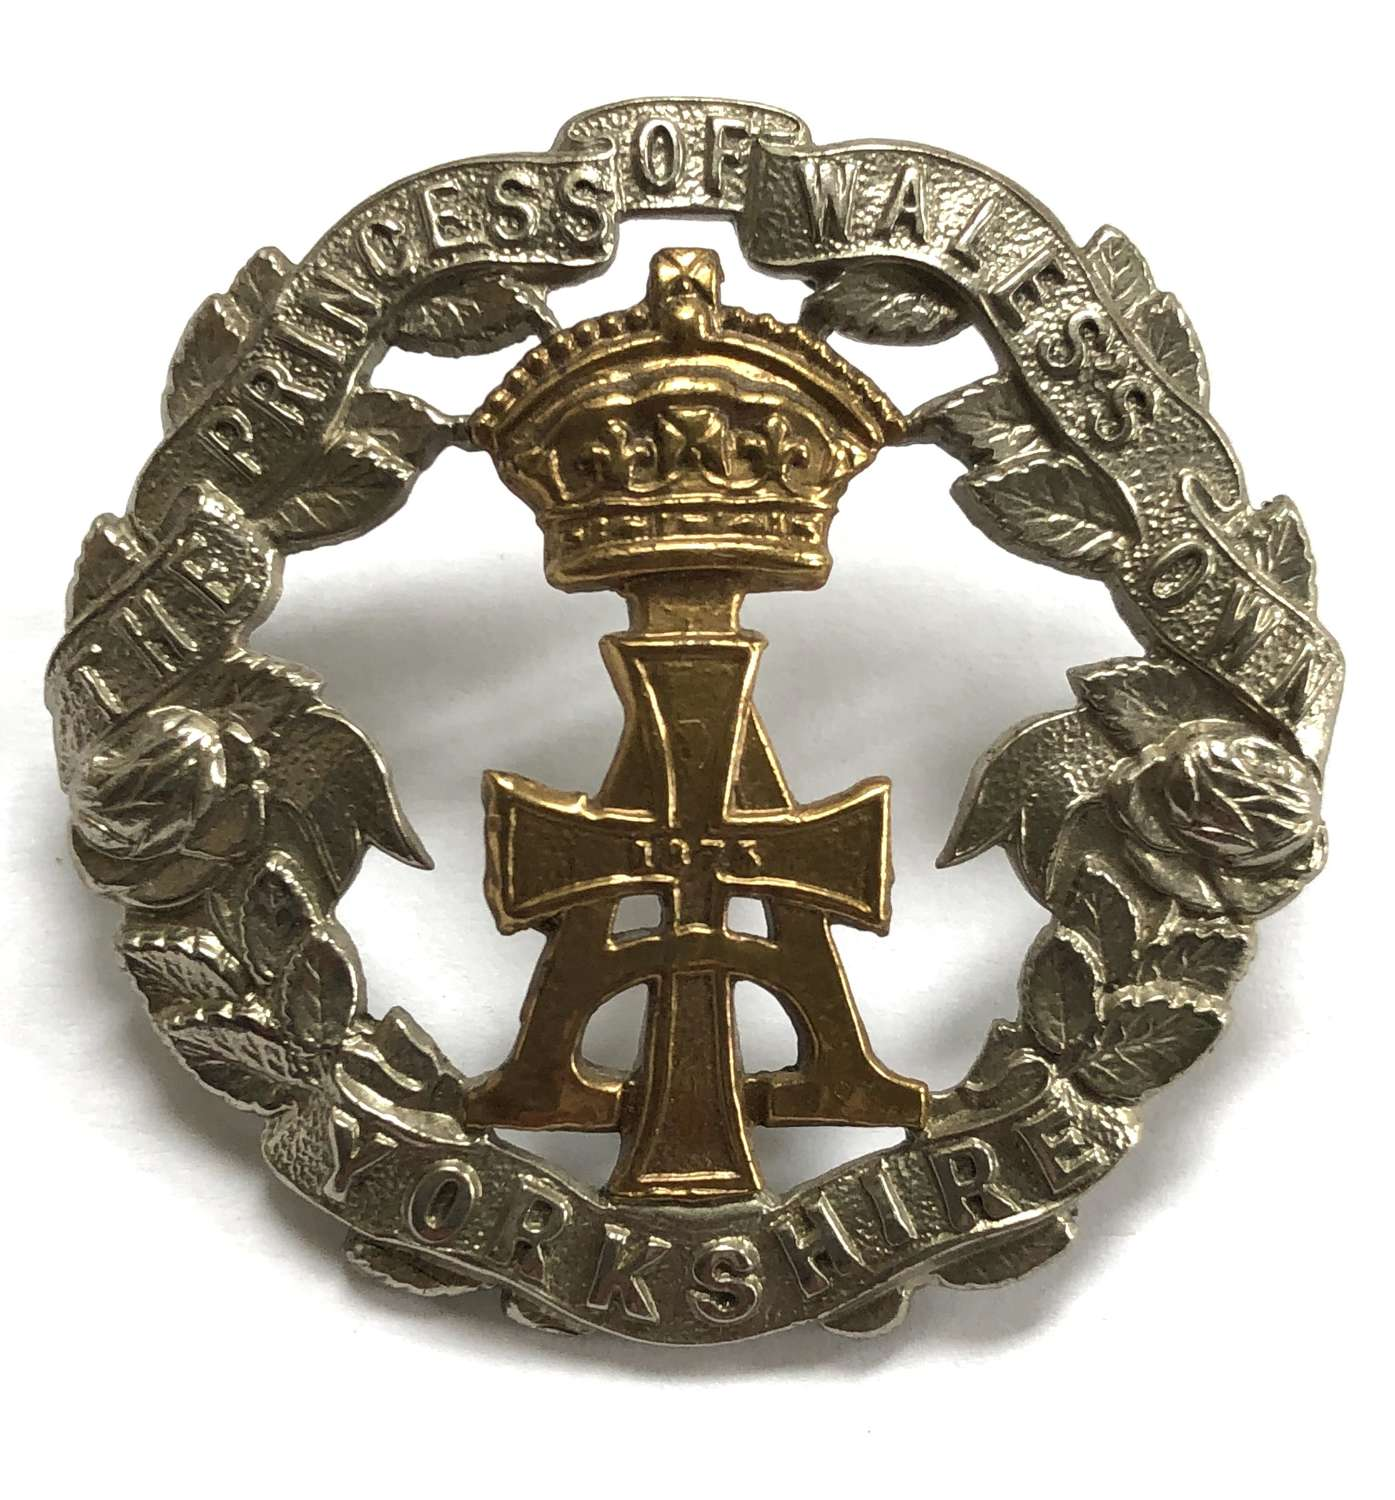 Yorkshire Regiment Victorian/Edwardian pre 1908 OR's cap badge